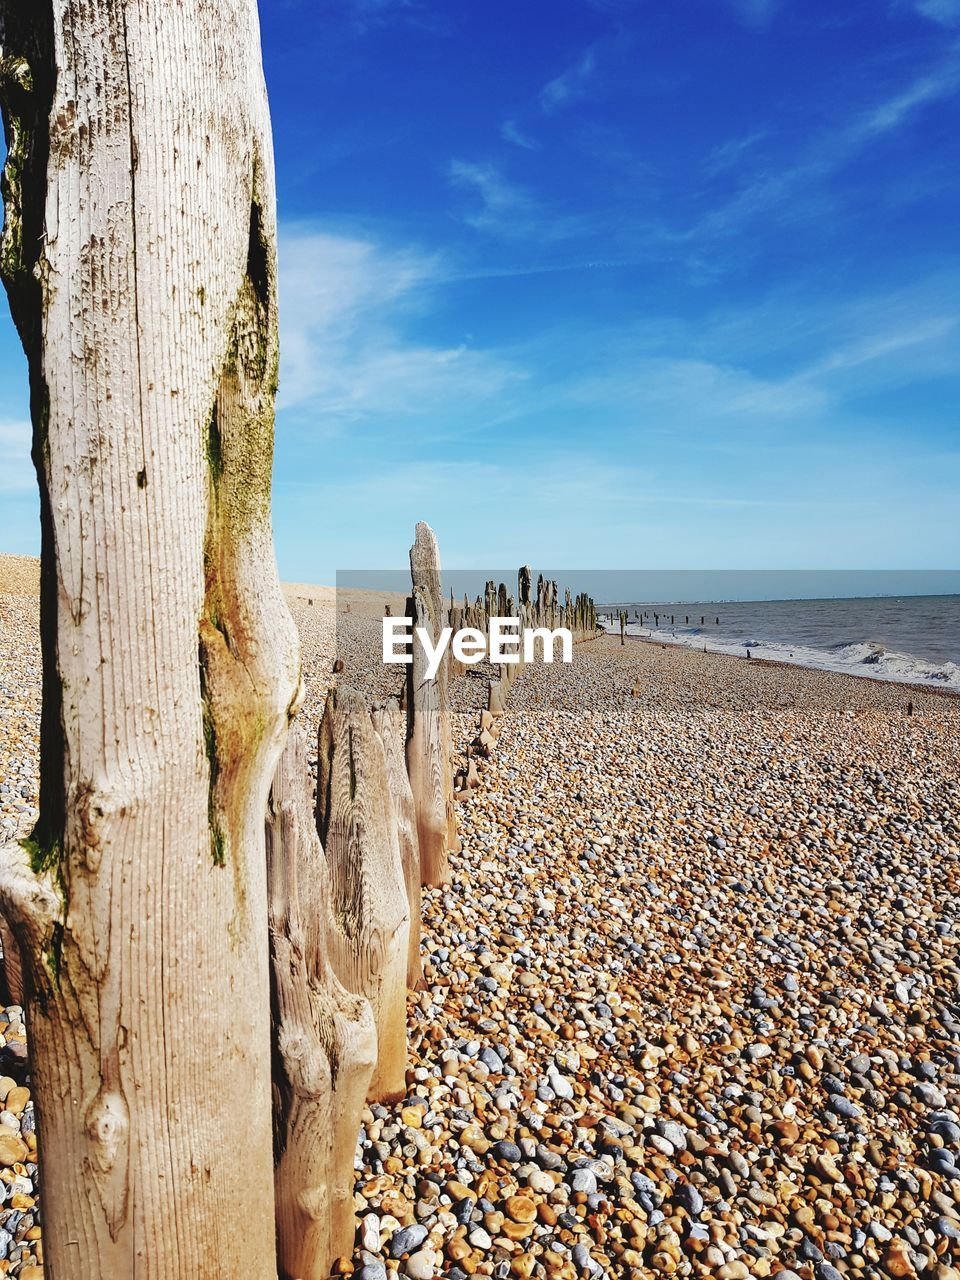 land, sky, beach, sea, tranquility, scenics - nature, beauty in nature, nature, water, tree, day, tree trunk, wood - material, tranquil scene, trunk, sunlight, plant, horizon over water, horizon, no people, pebble, wooden post